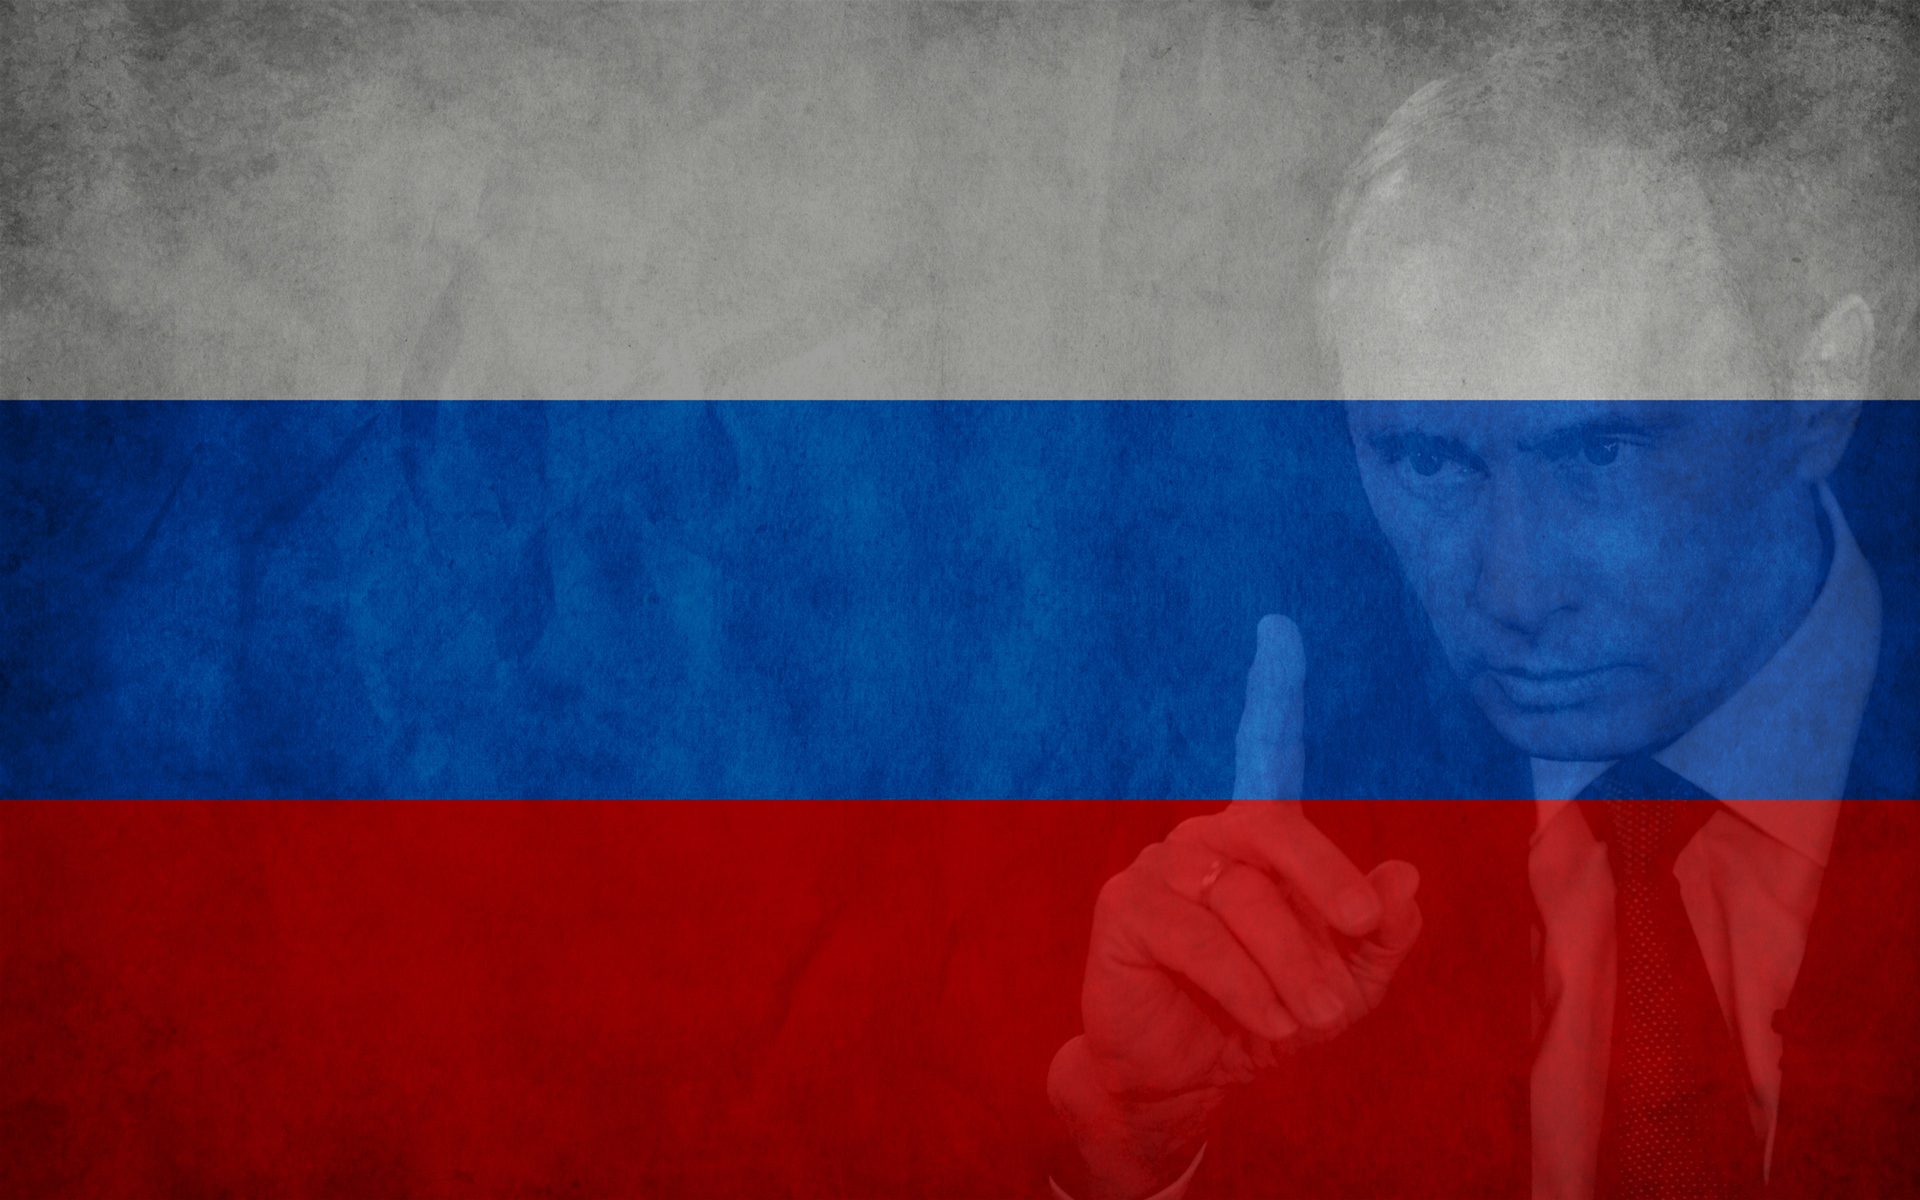 Vladimir Putin Wallpaper By Beefcakepantyhose